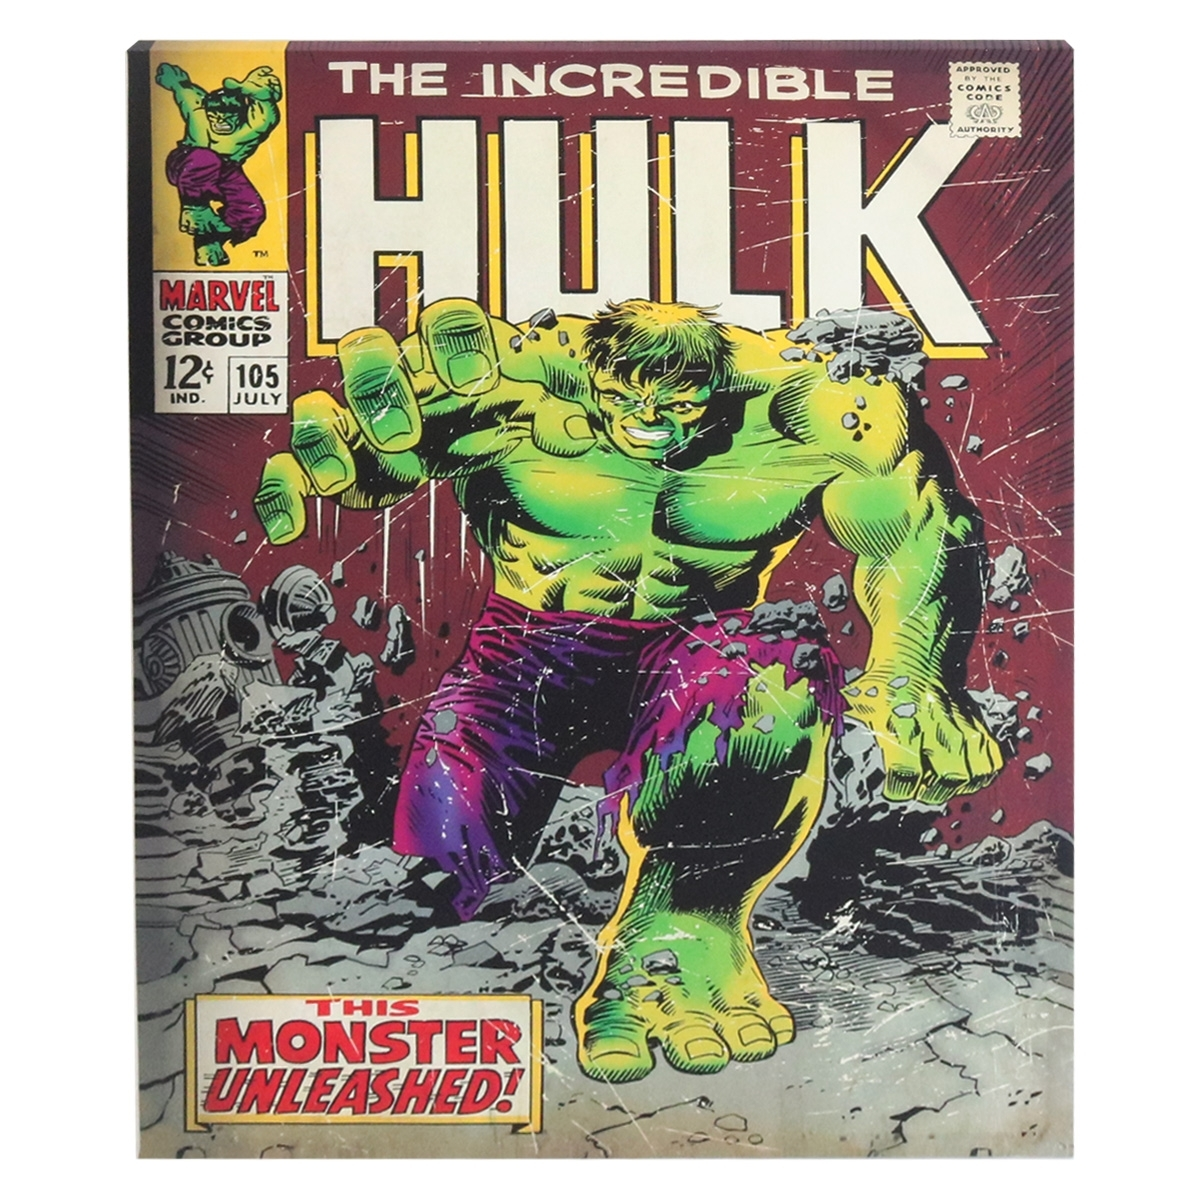 Marvel Incredible Hulk Canvas Wall Art | Harry Corry Limited With Regard To Most Popular Marvel Canvas Wall Art (Gallery 13 of 15)